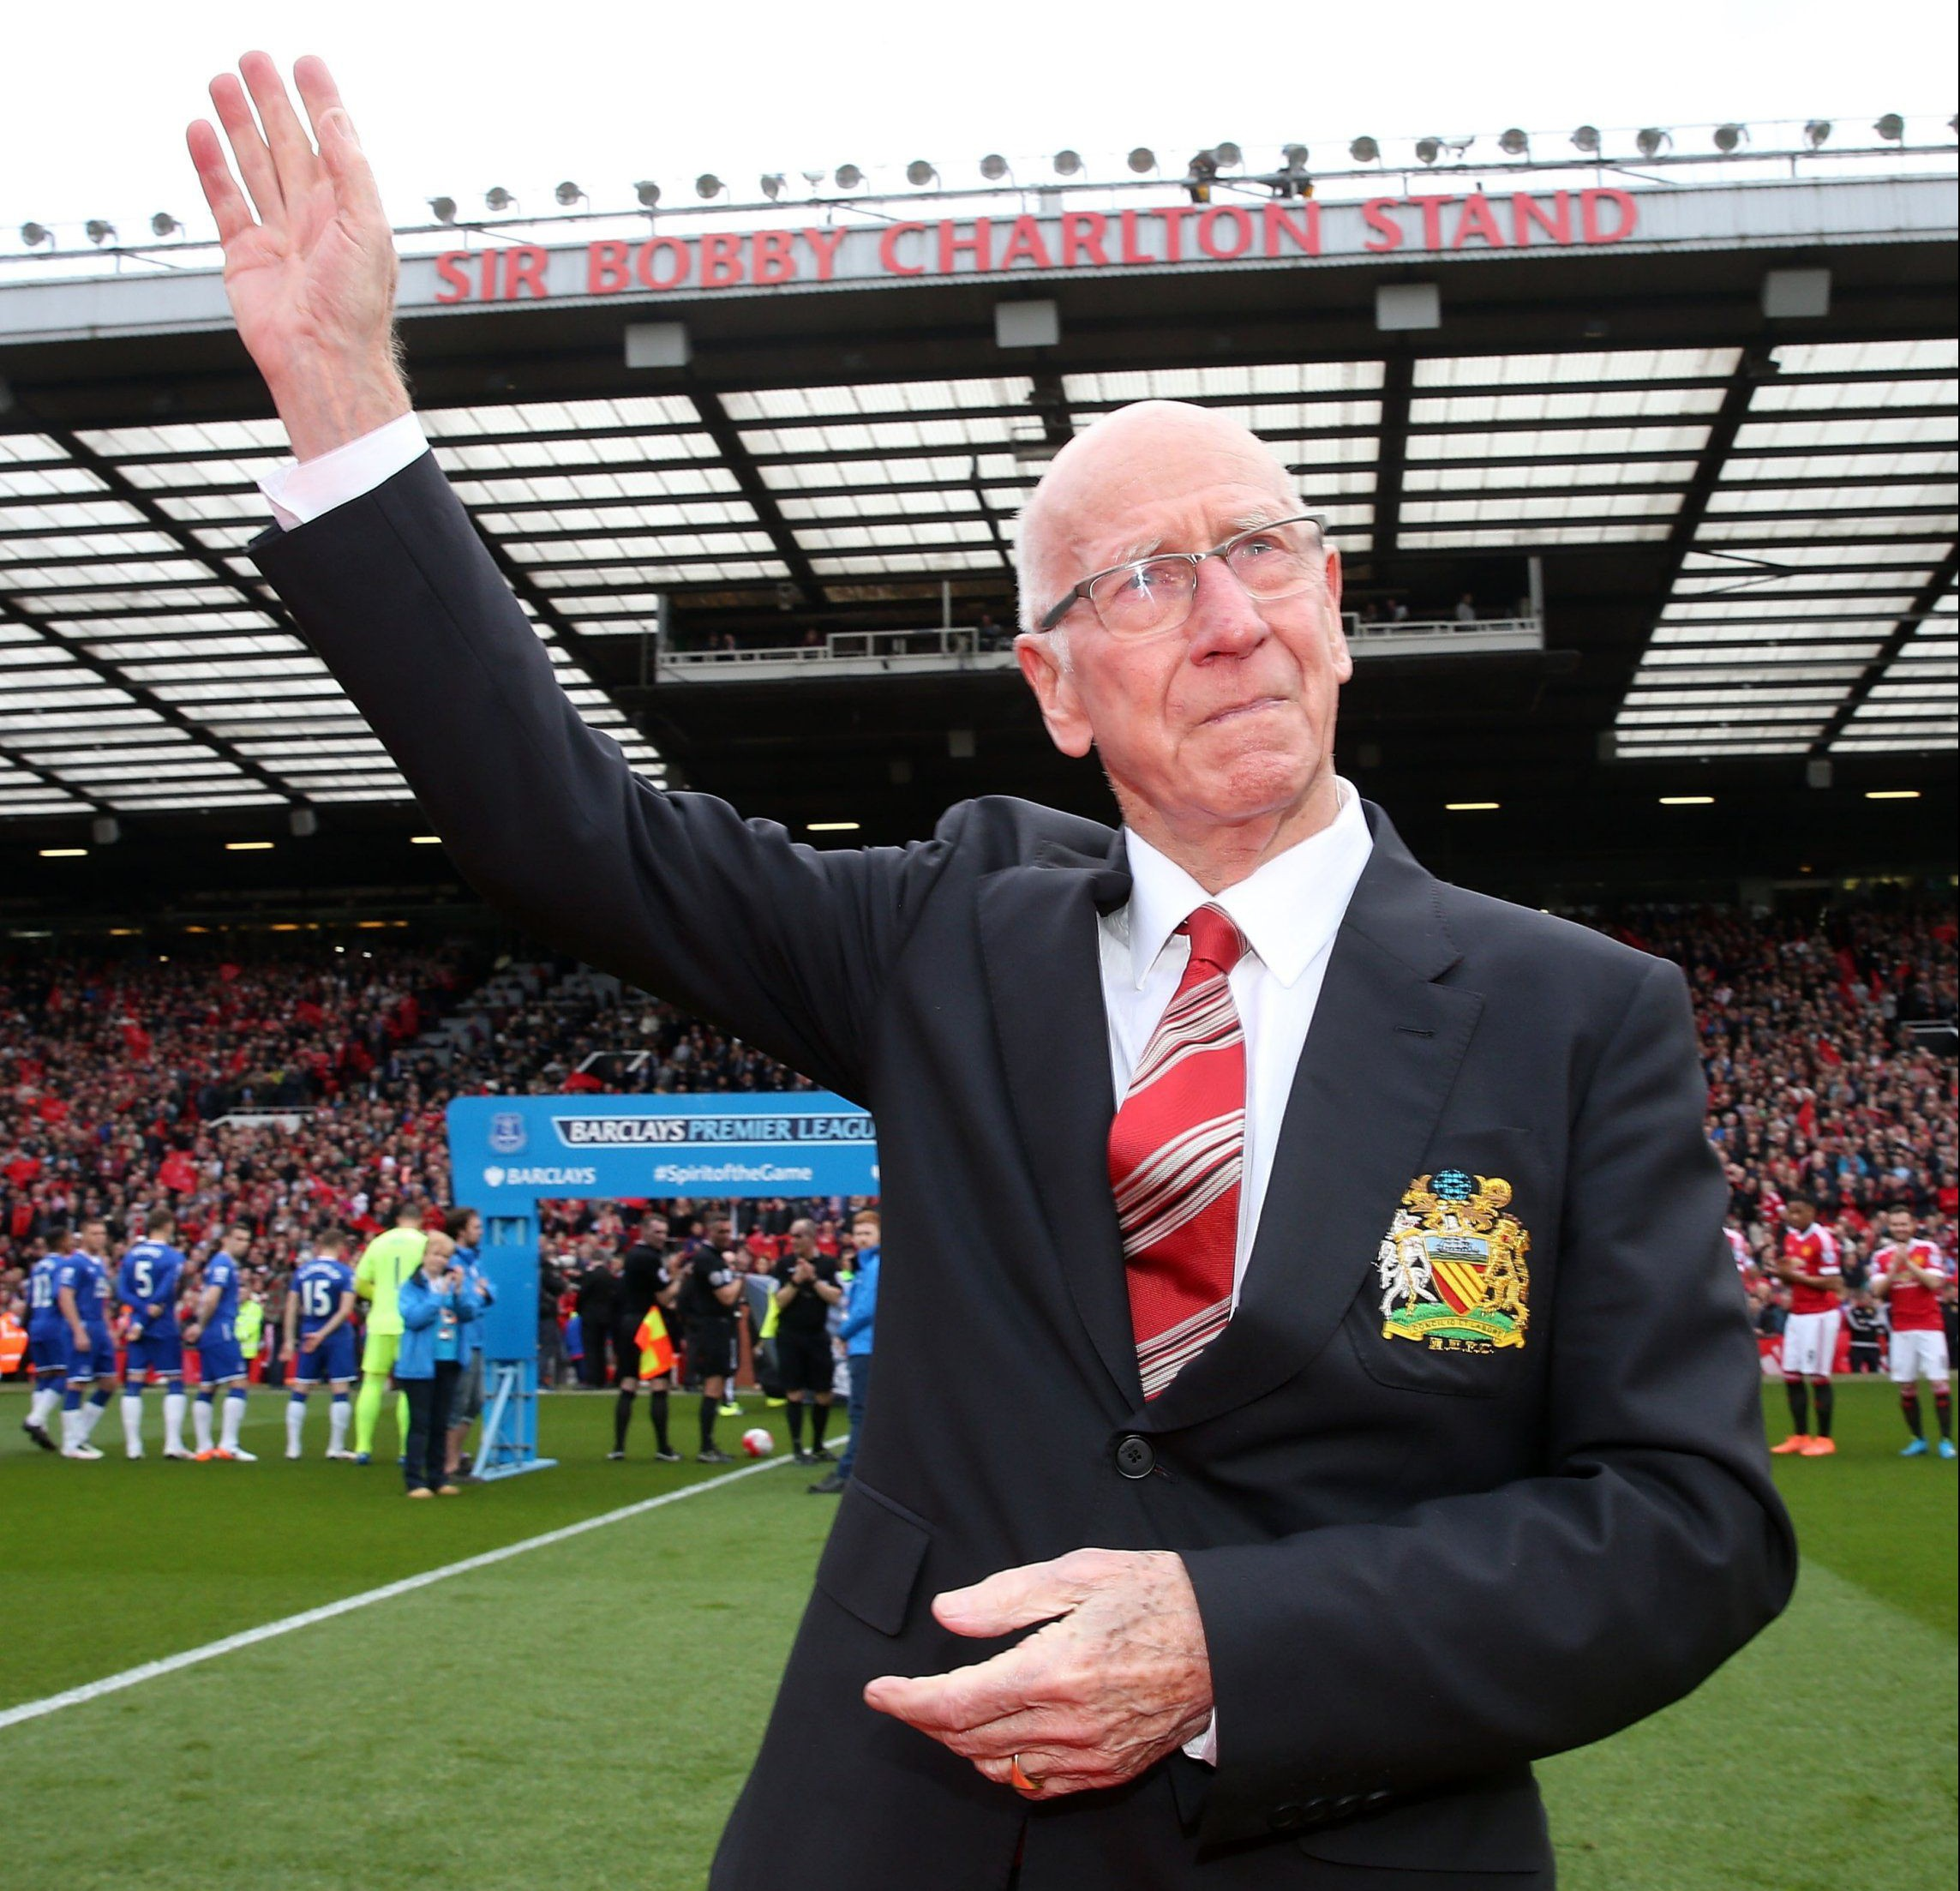 MANCHESTER, ENGLAND - APRIL 03: Sir Bobby Charlton of Manchester United attends the unveiling of a stand renamed in his honour ahead of the Barclays Premier League match between Manchester United and Everton at Old Trafford on April 3, 2016 in Manchester, England. (Photo by Matthew Peters/Man Utd via Getty Images)